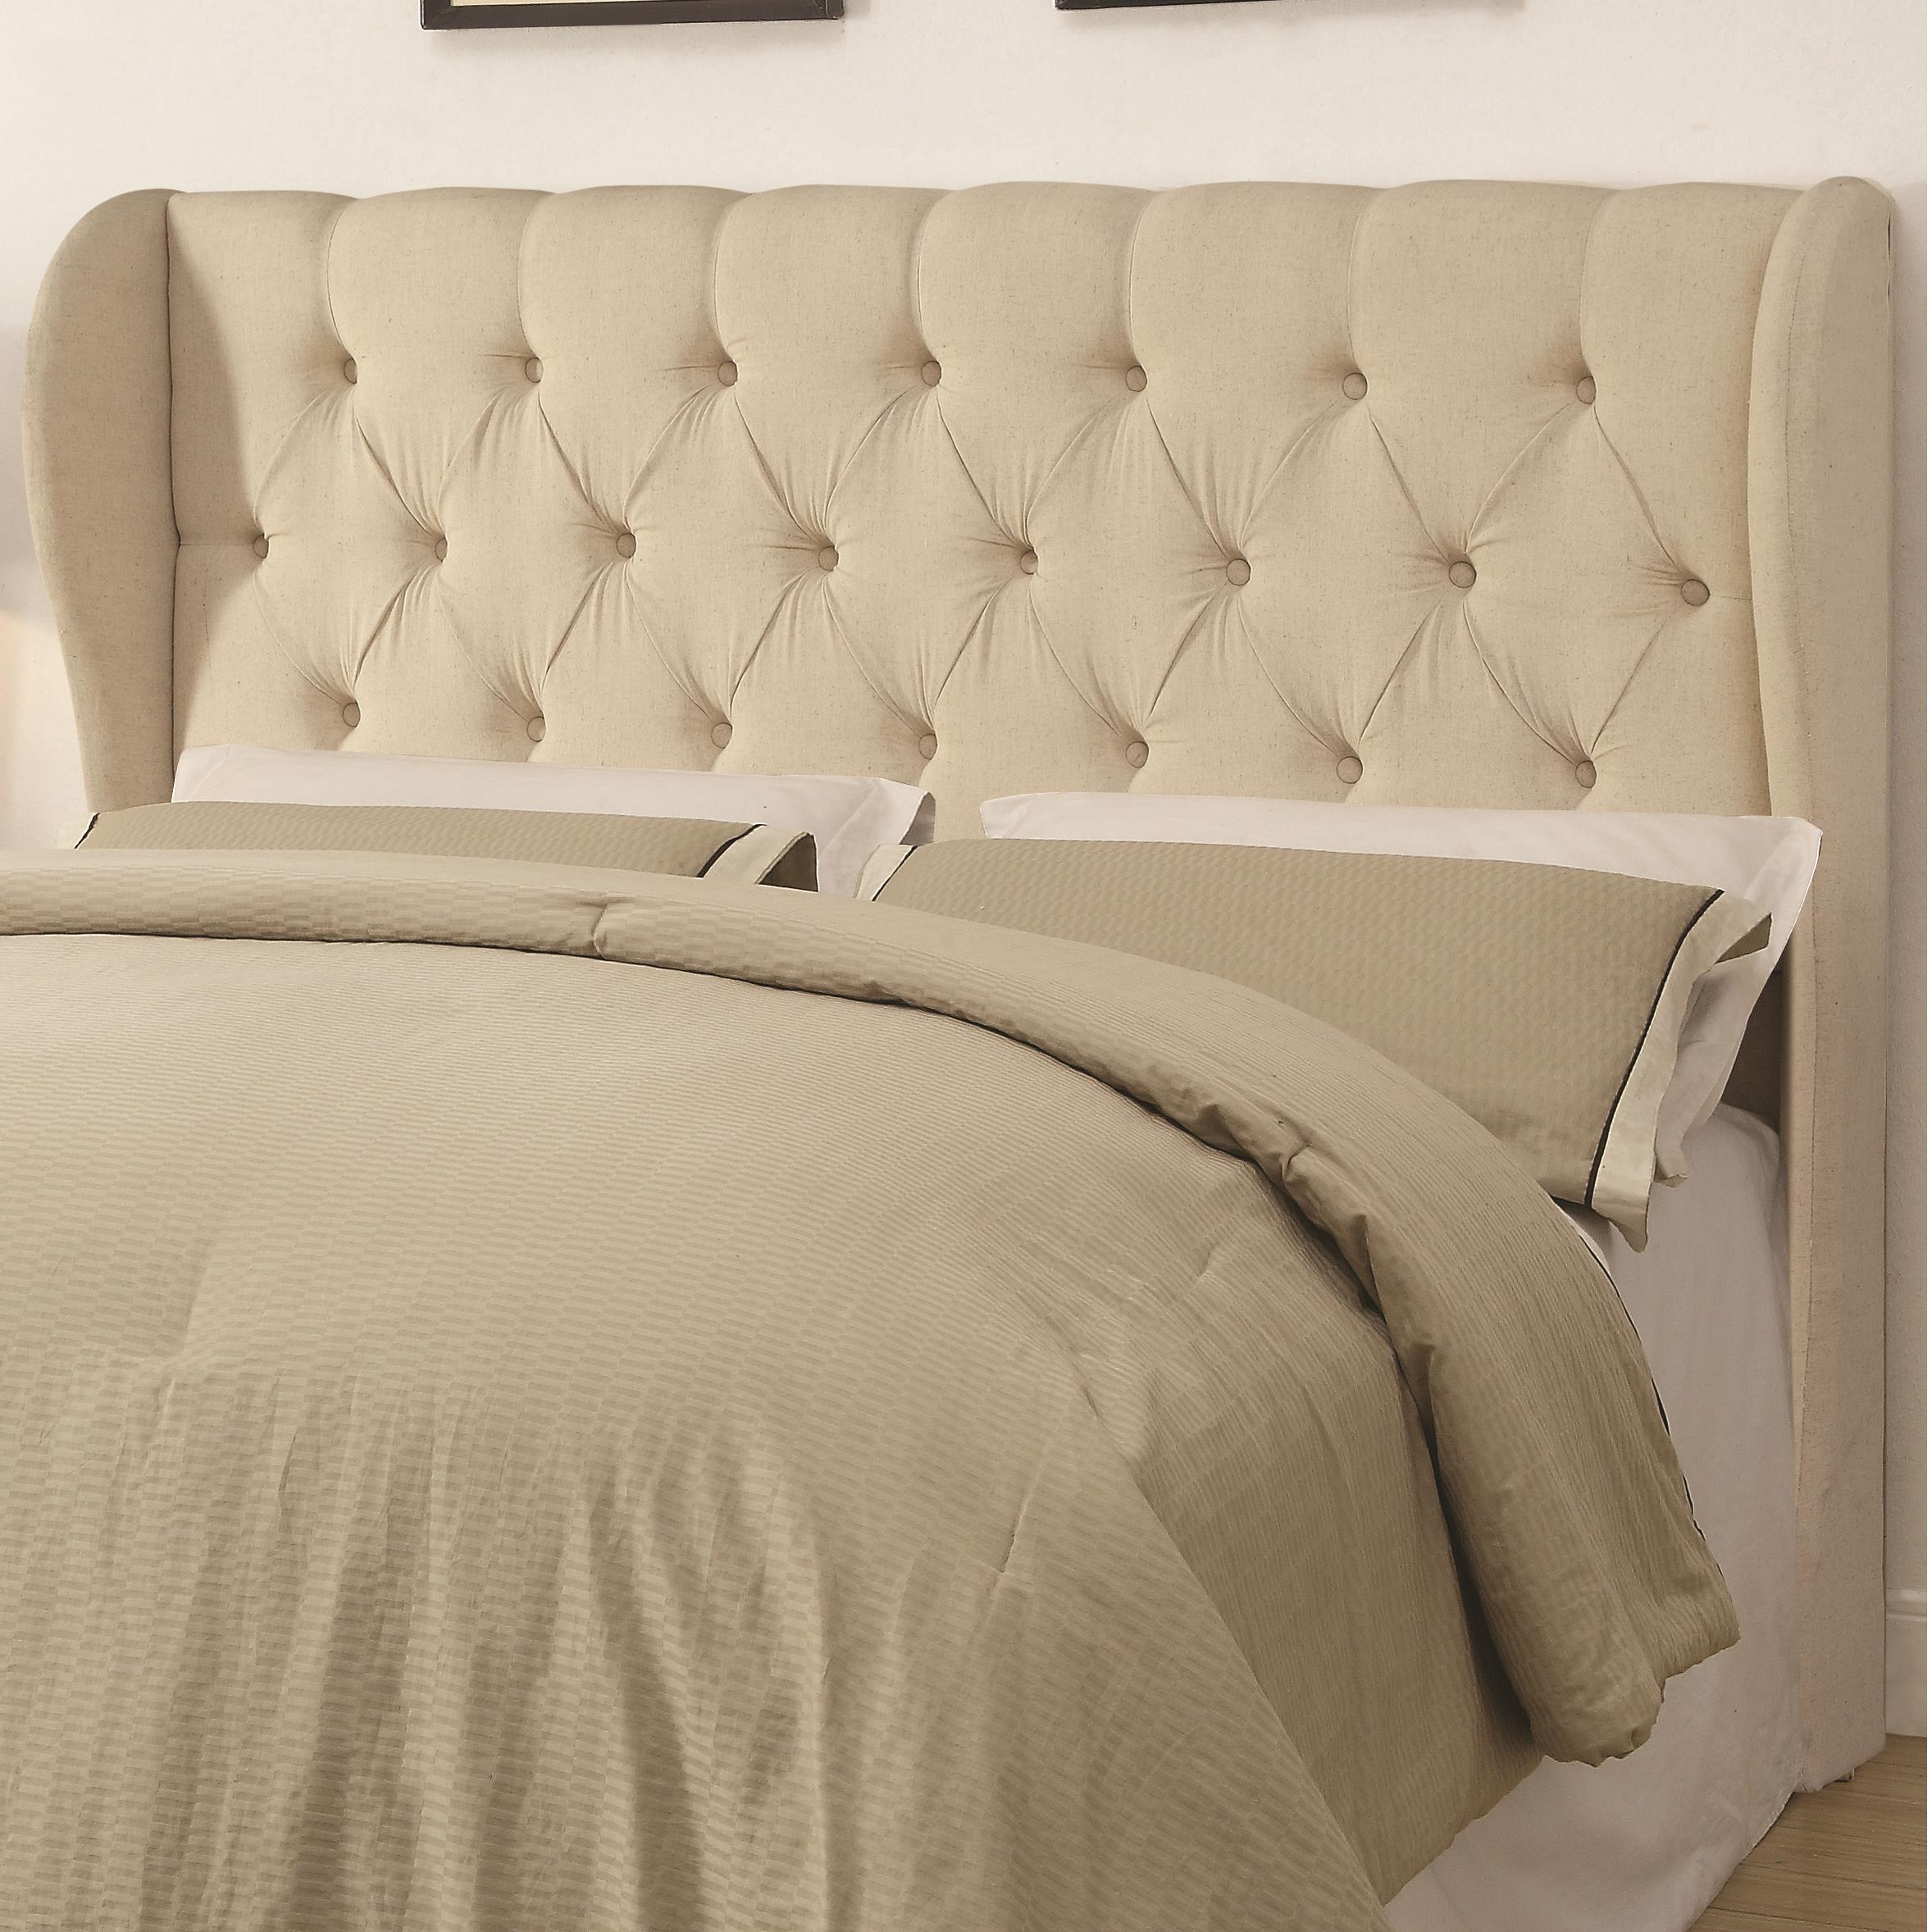 Upholstered Beds Queen/ Full Murrieta Headboard by Coaster at Value City Furniture